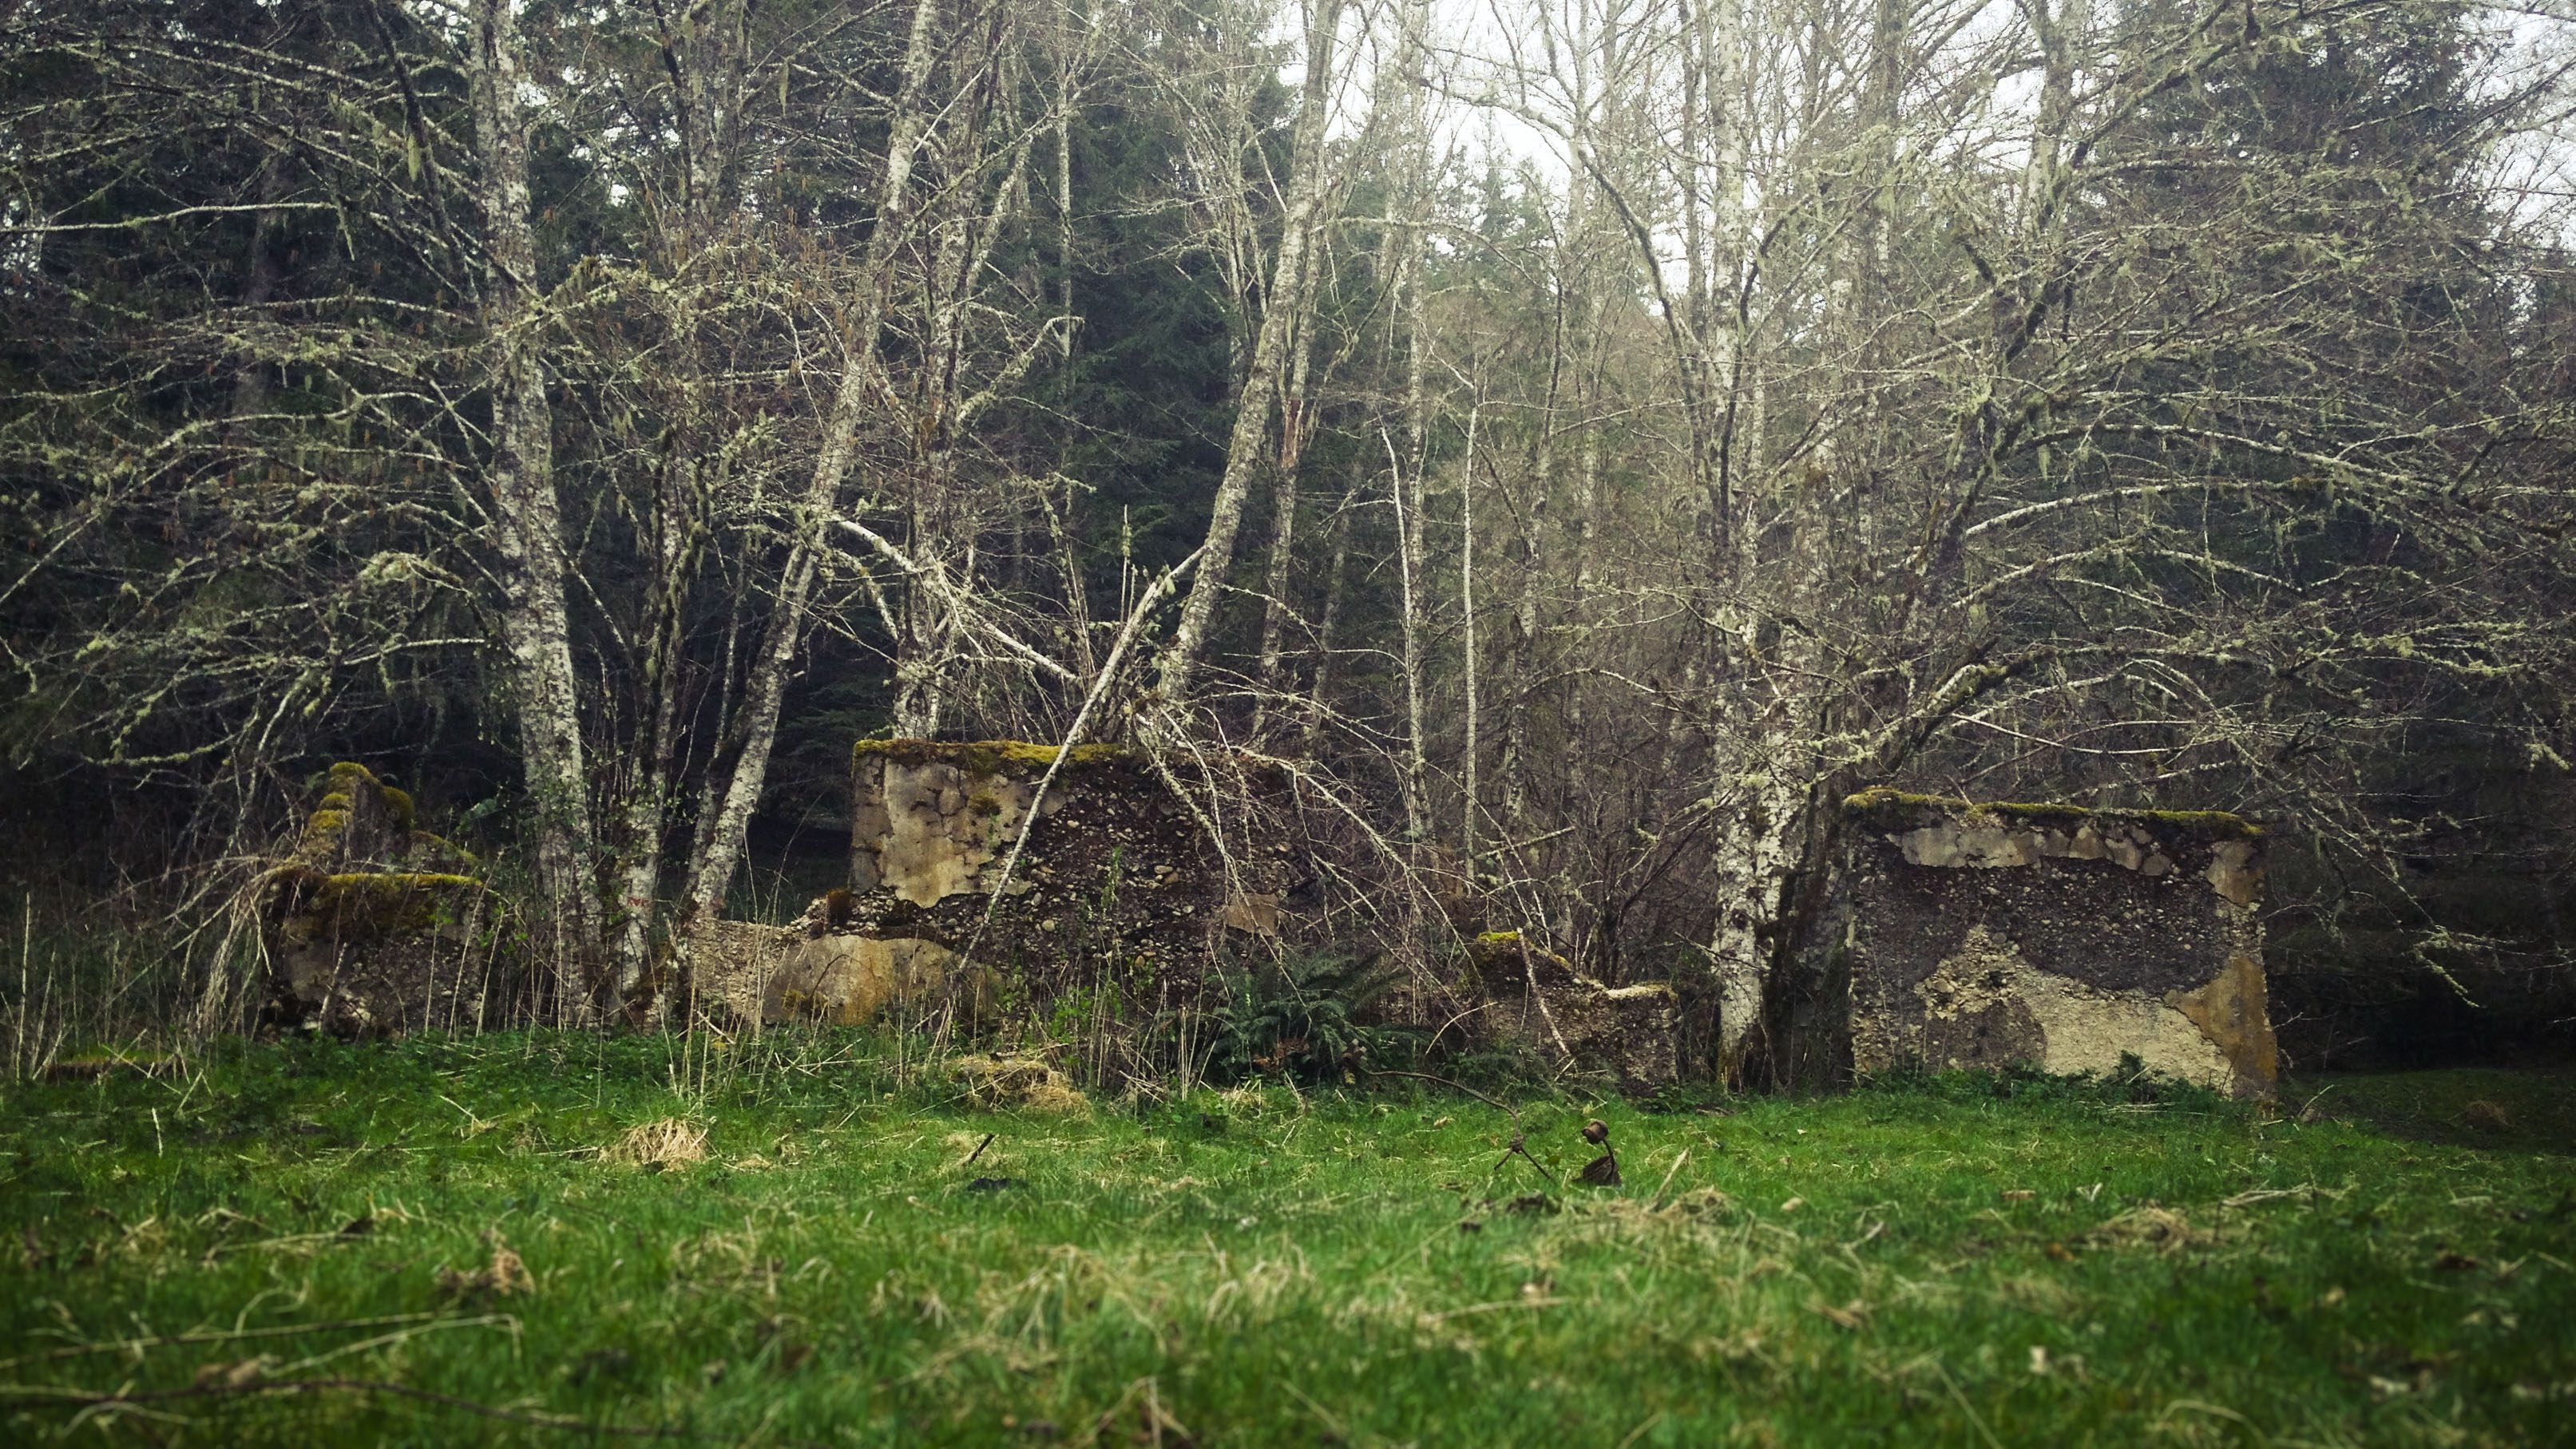 Remains of a school in the Melmont Ghost Town, Architecture, Forest, Landscape, Nature, HQ Photo